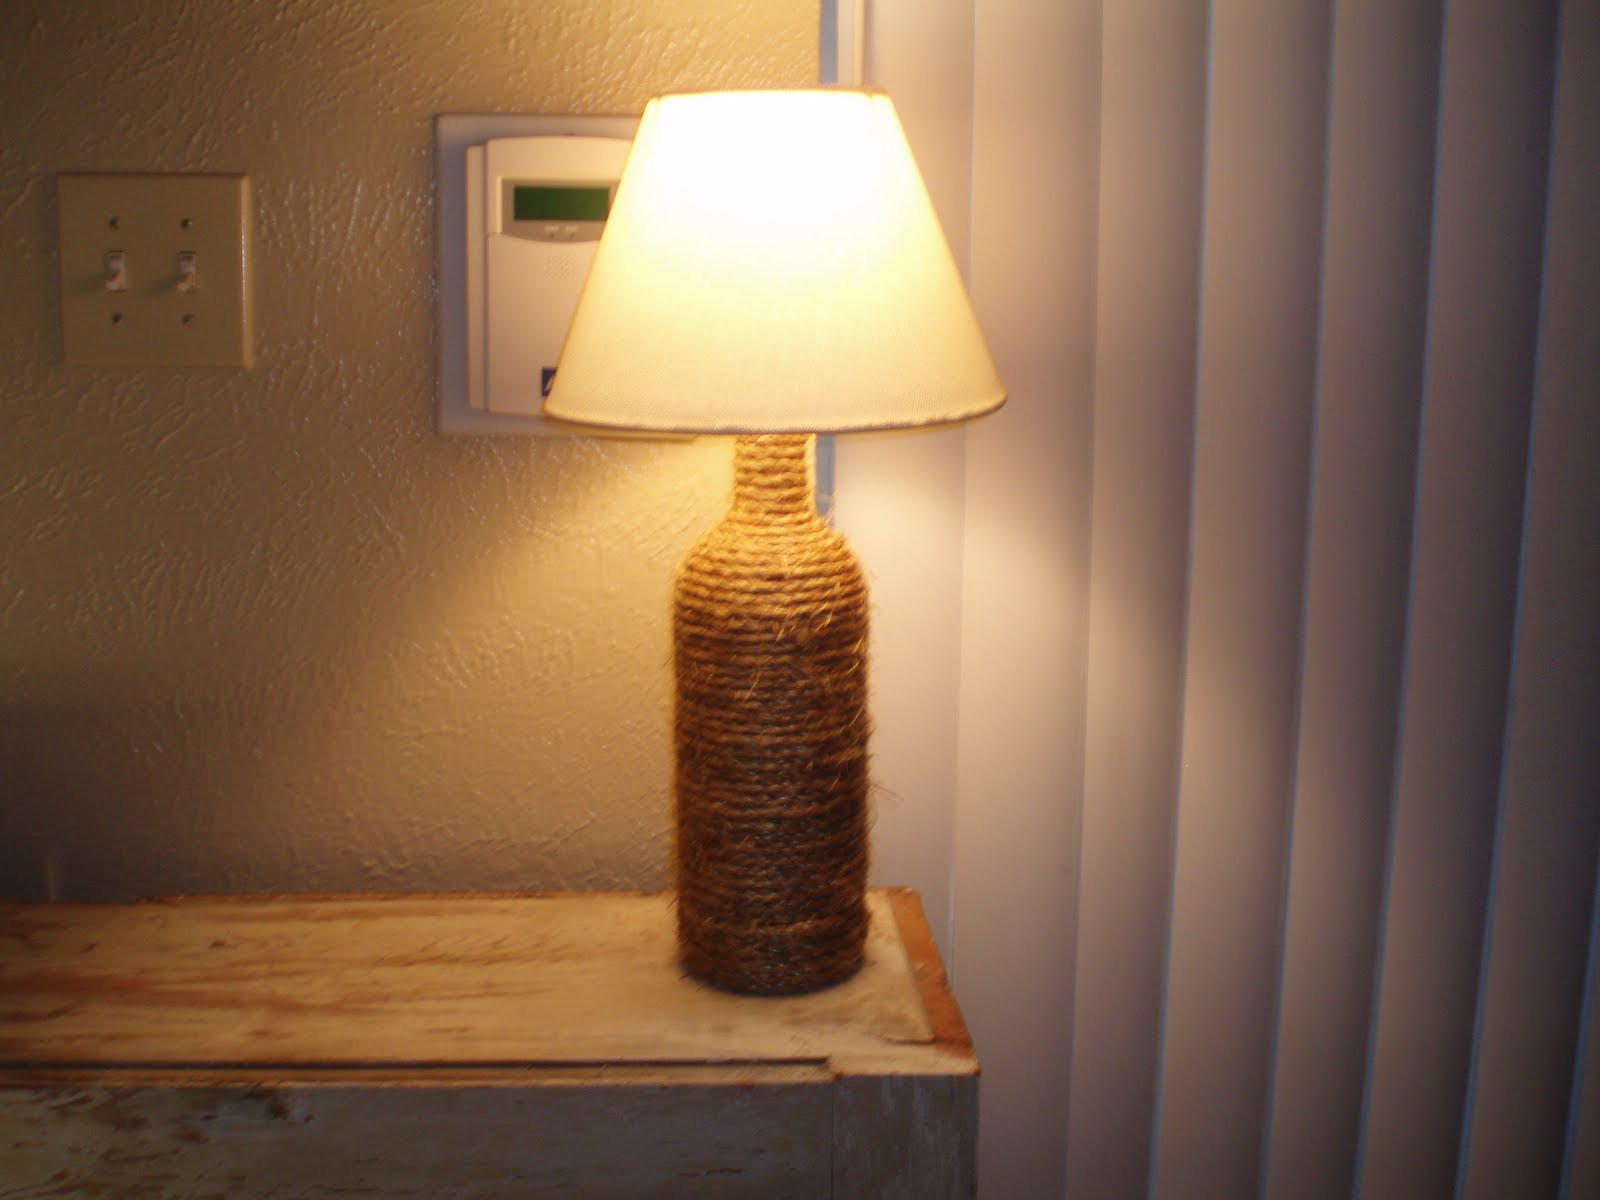 Diy Lamp  12 Ways to Make a Wine Bottle Lamp